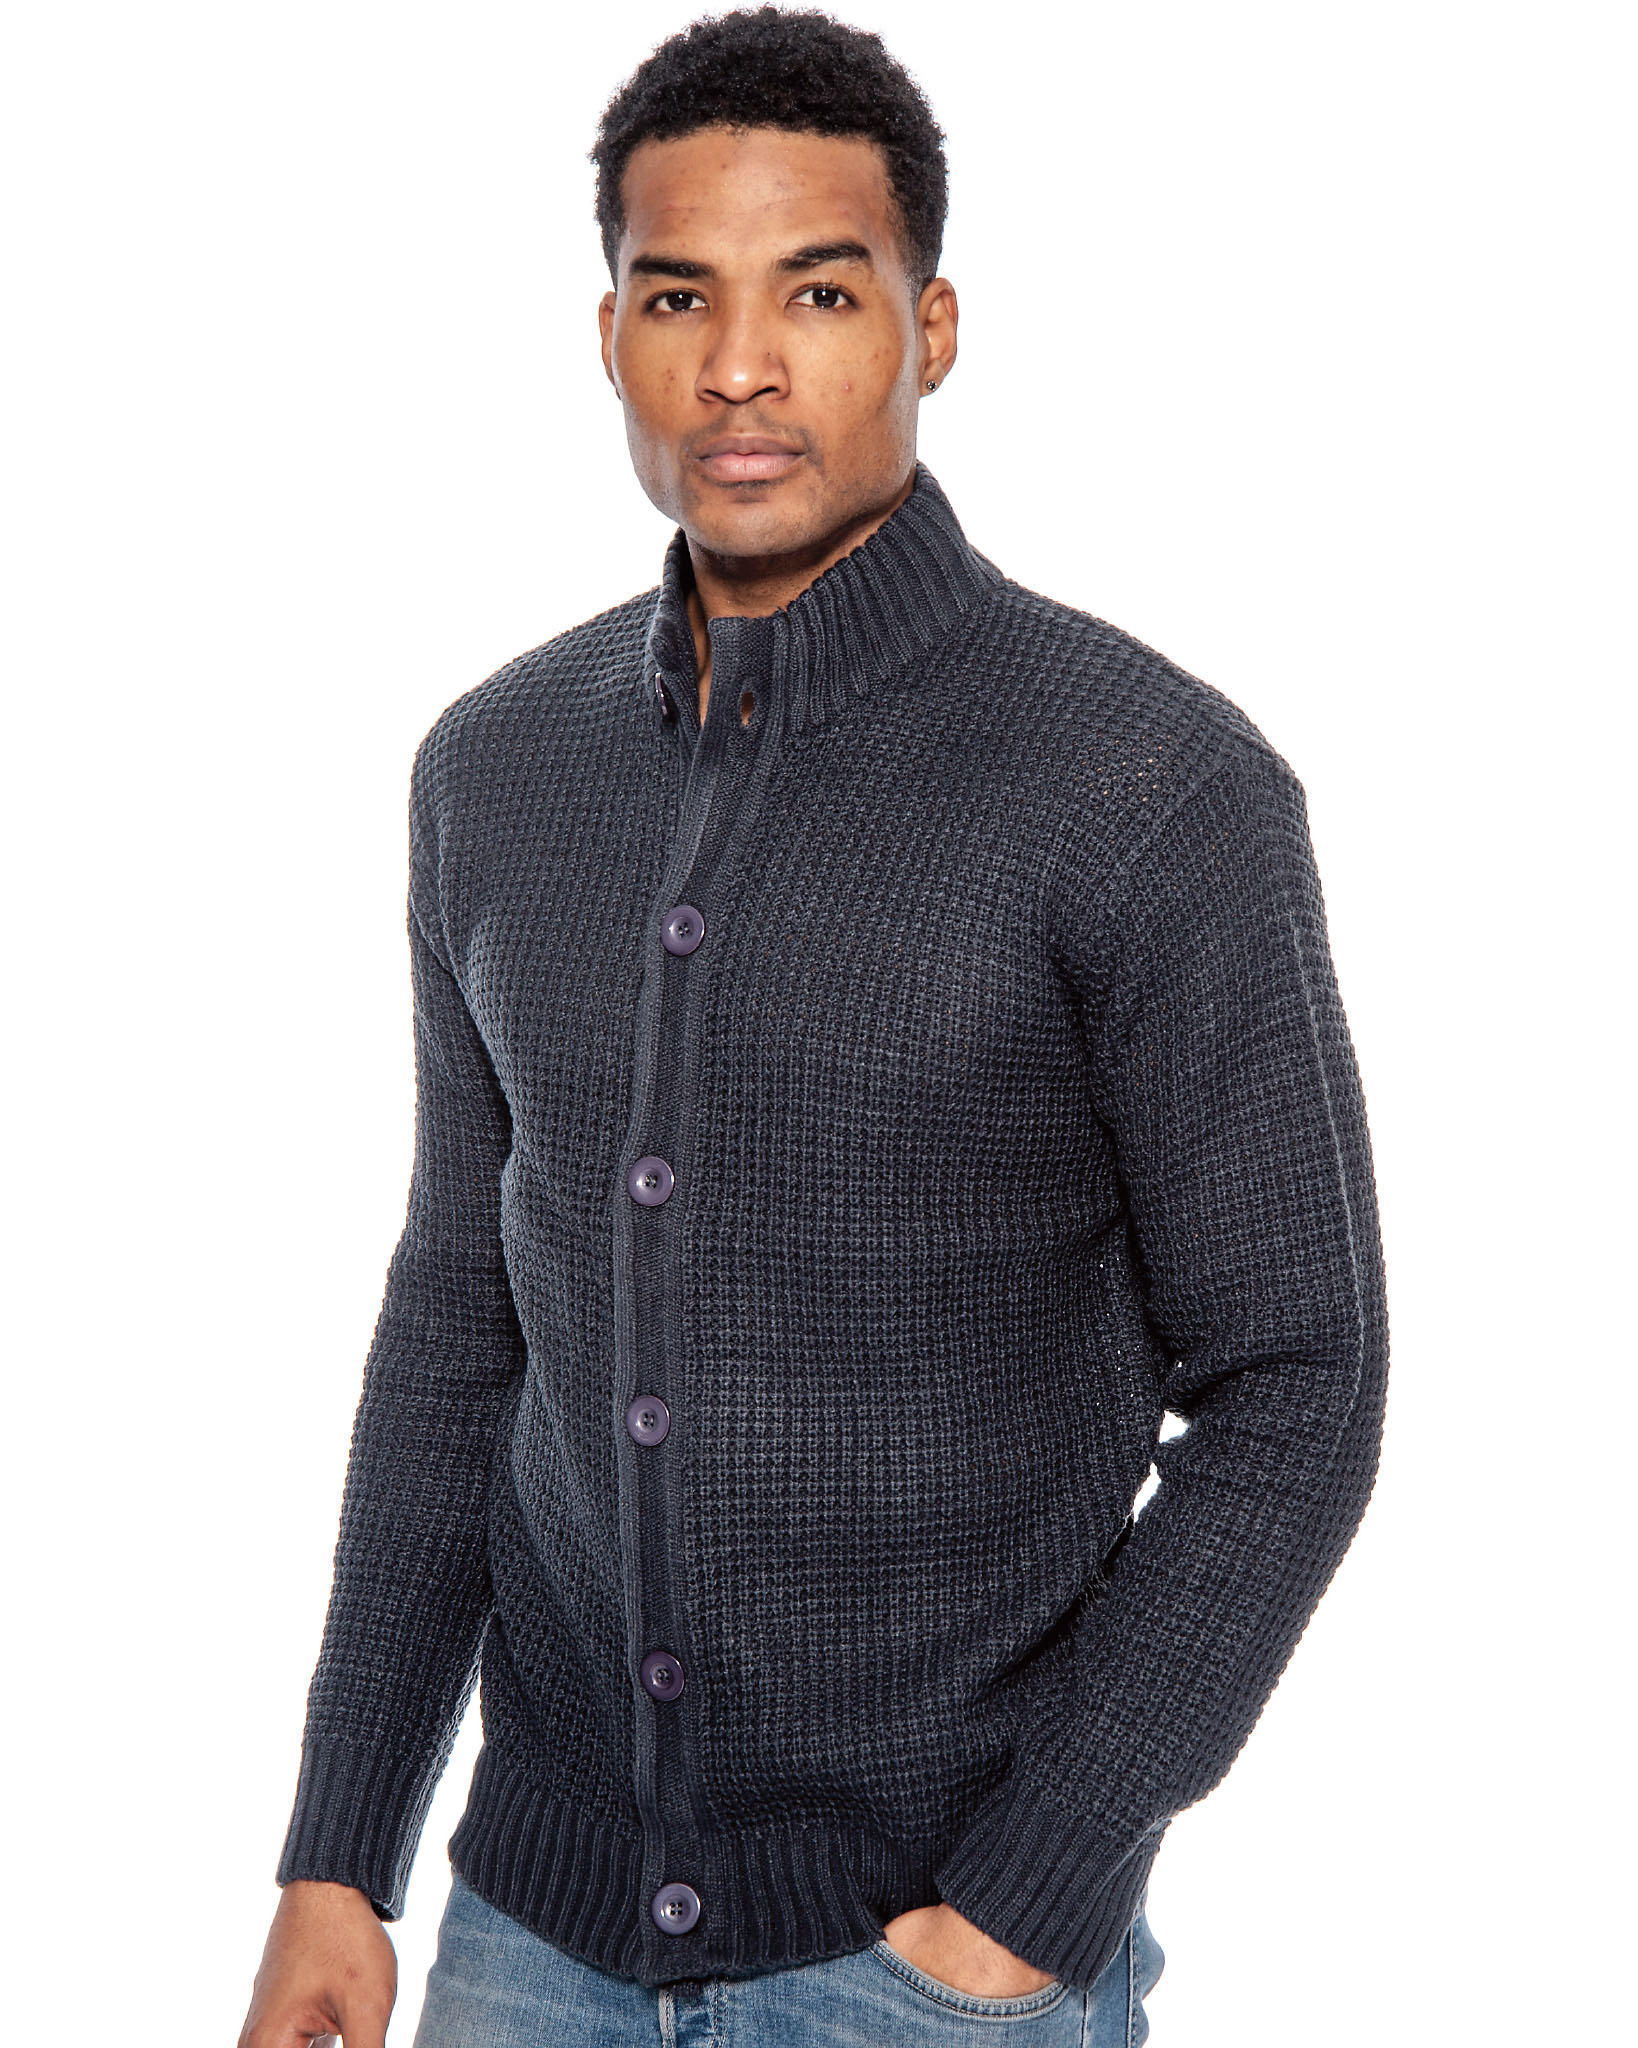 Browse sweaters for men and cardigans for men at Land's End! We offer a wide variety of men's sweaters and men's cardigan sweaters perfect for fall and winter.